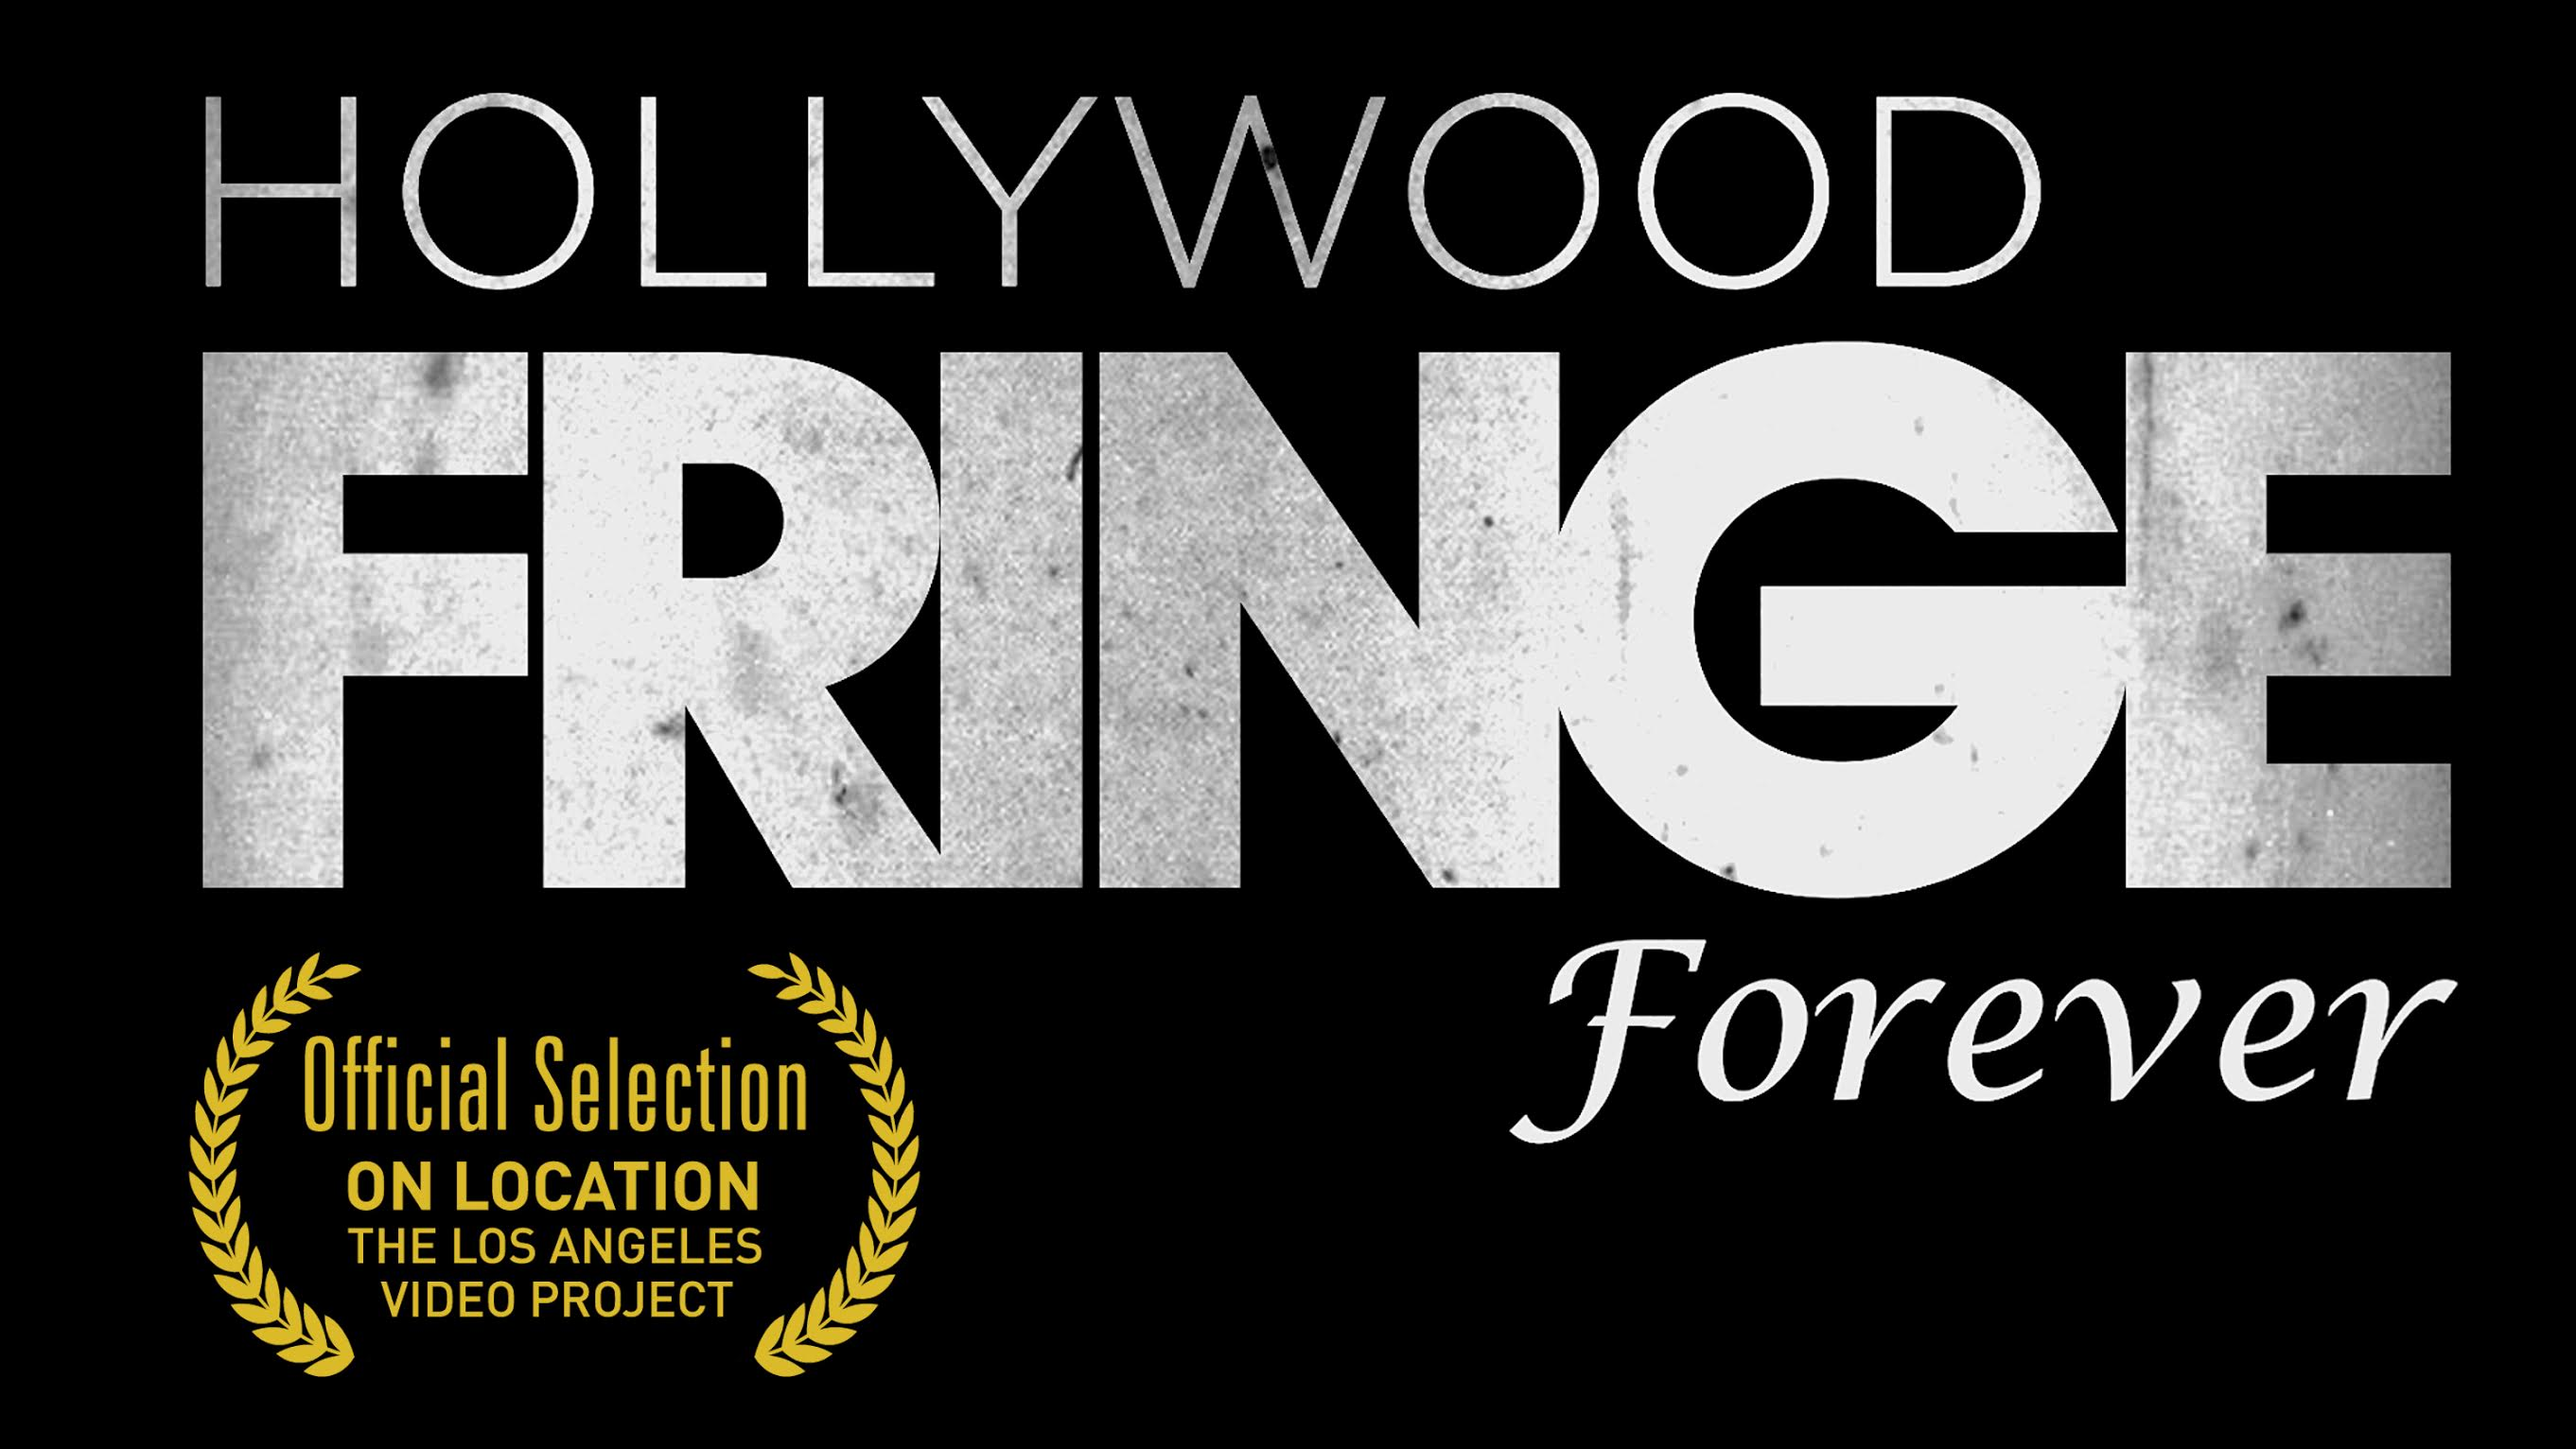 Hollywood Fringe Forever